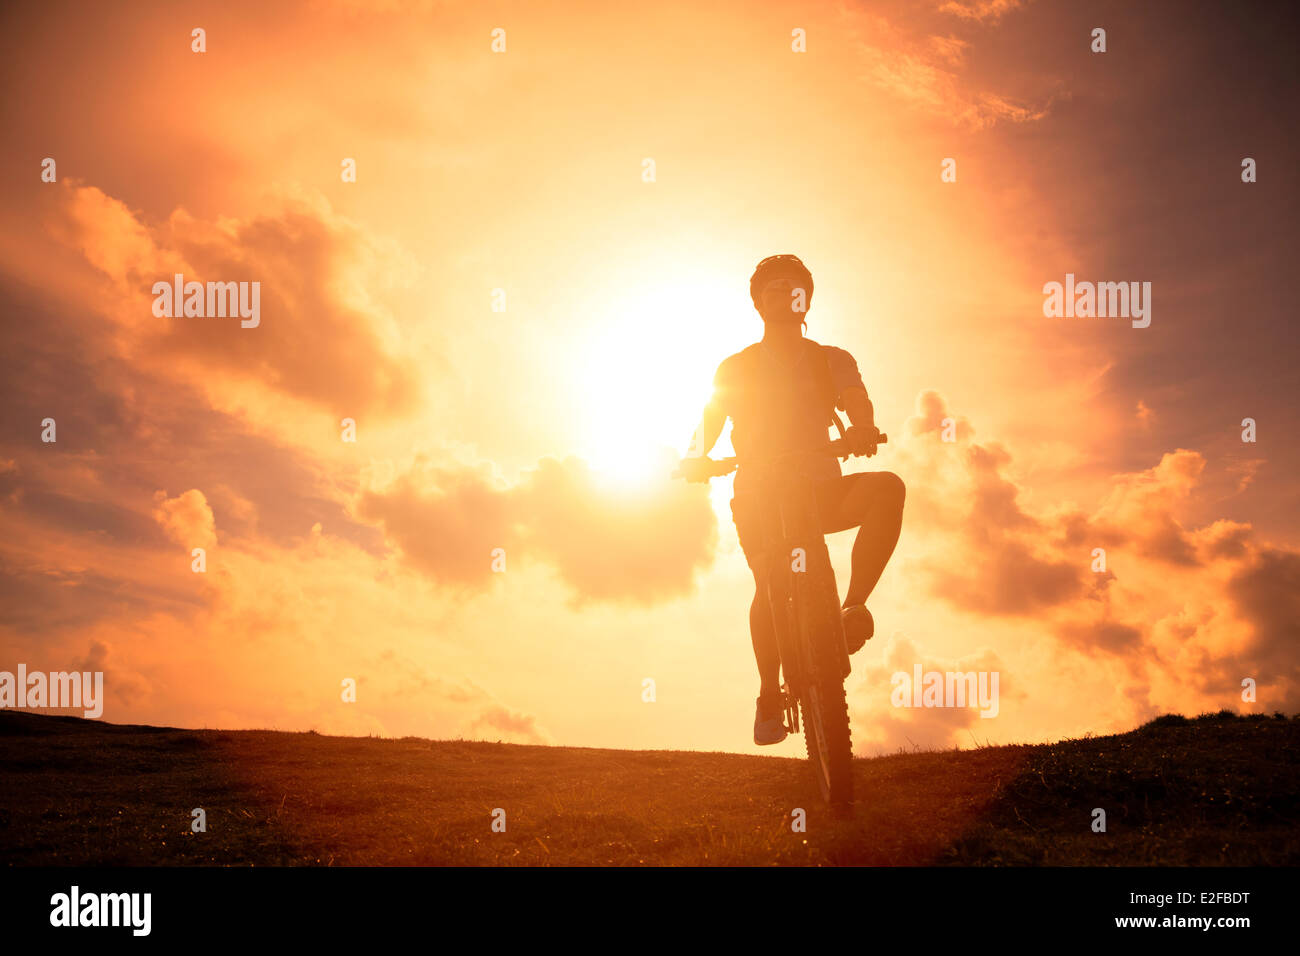 The silhouette of mountain bicycle rider on the hill - Stock Image